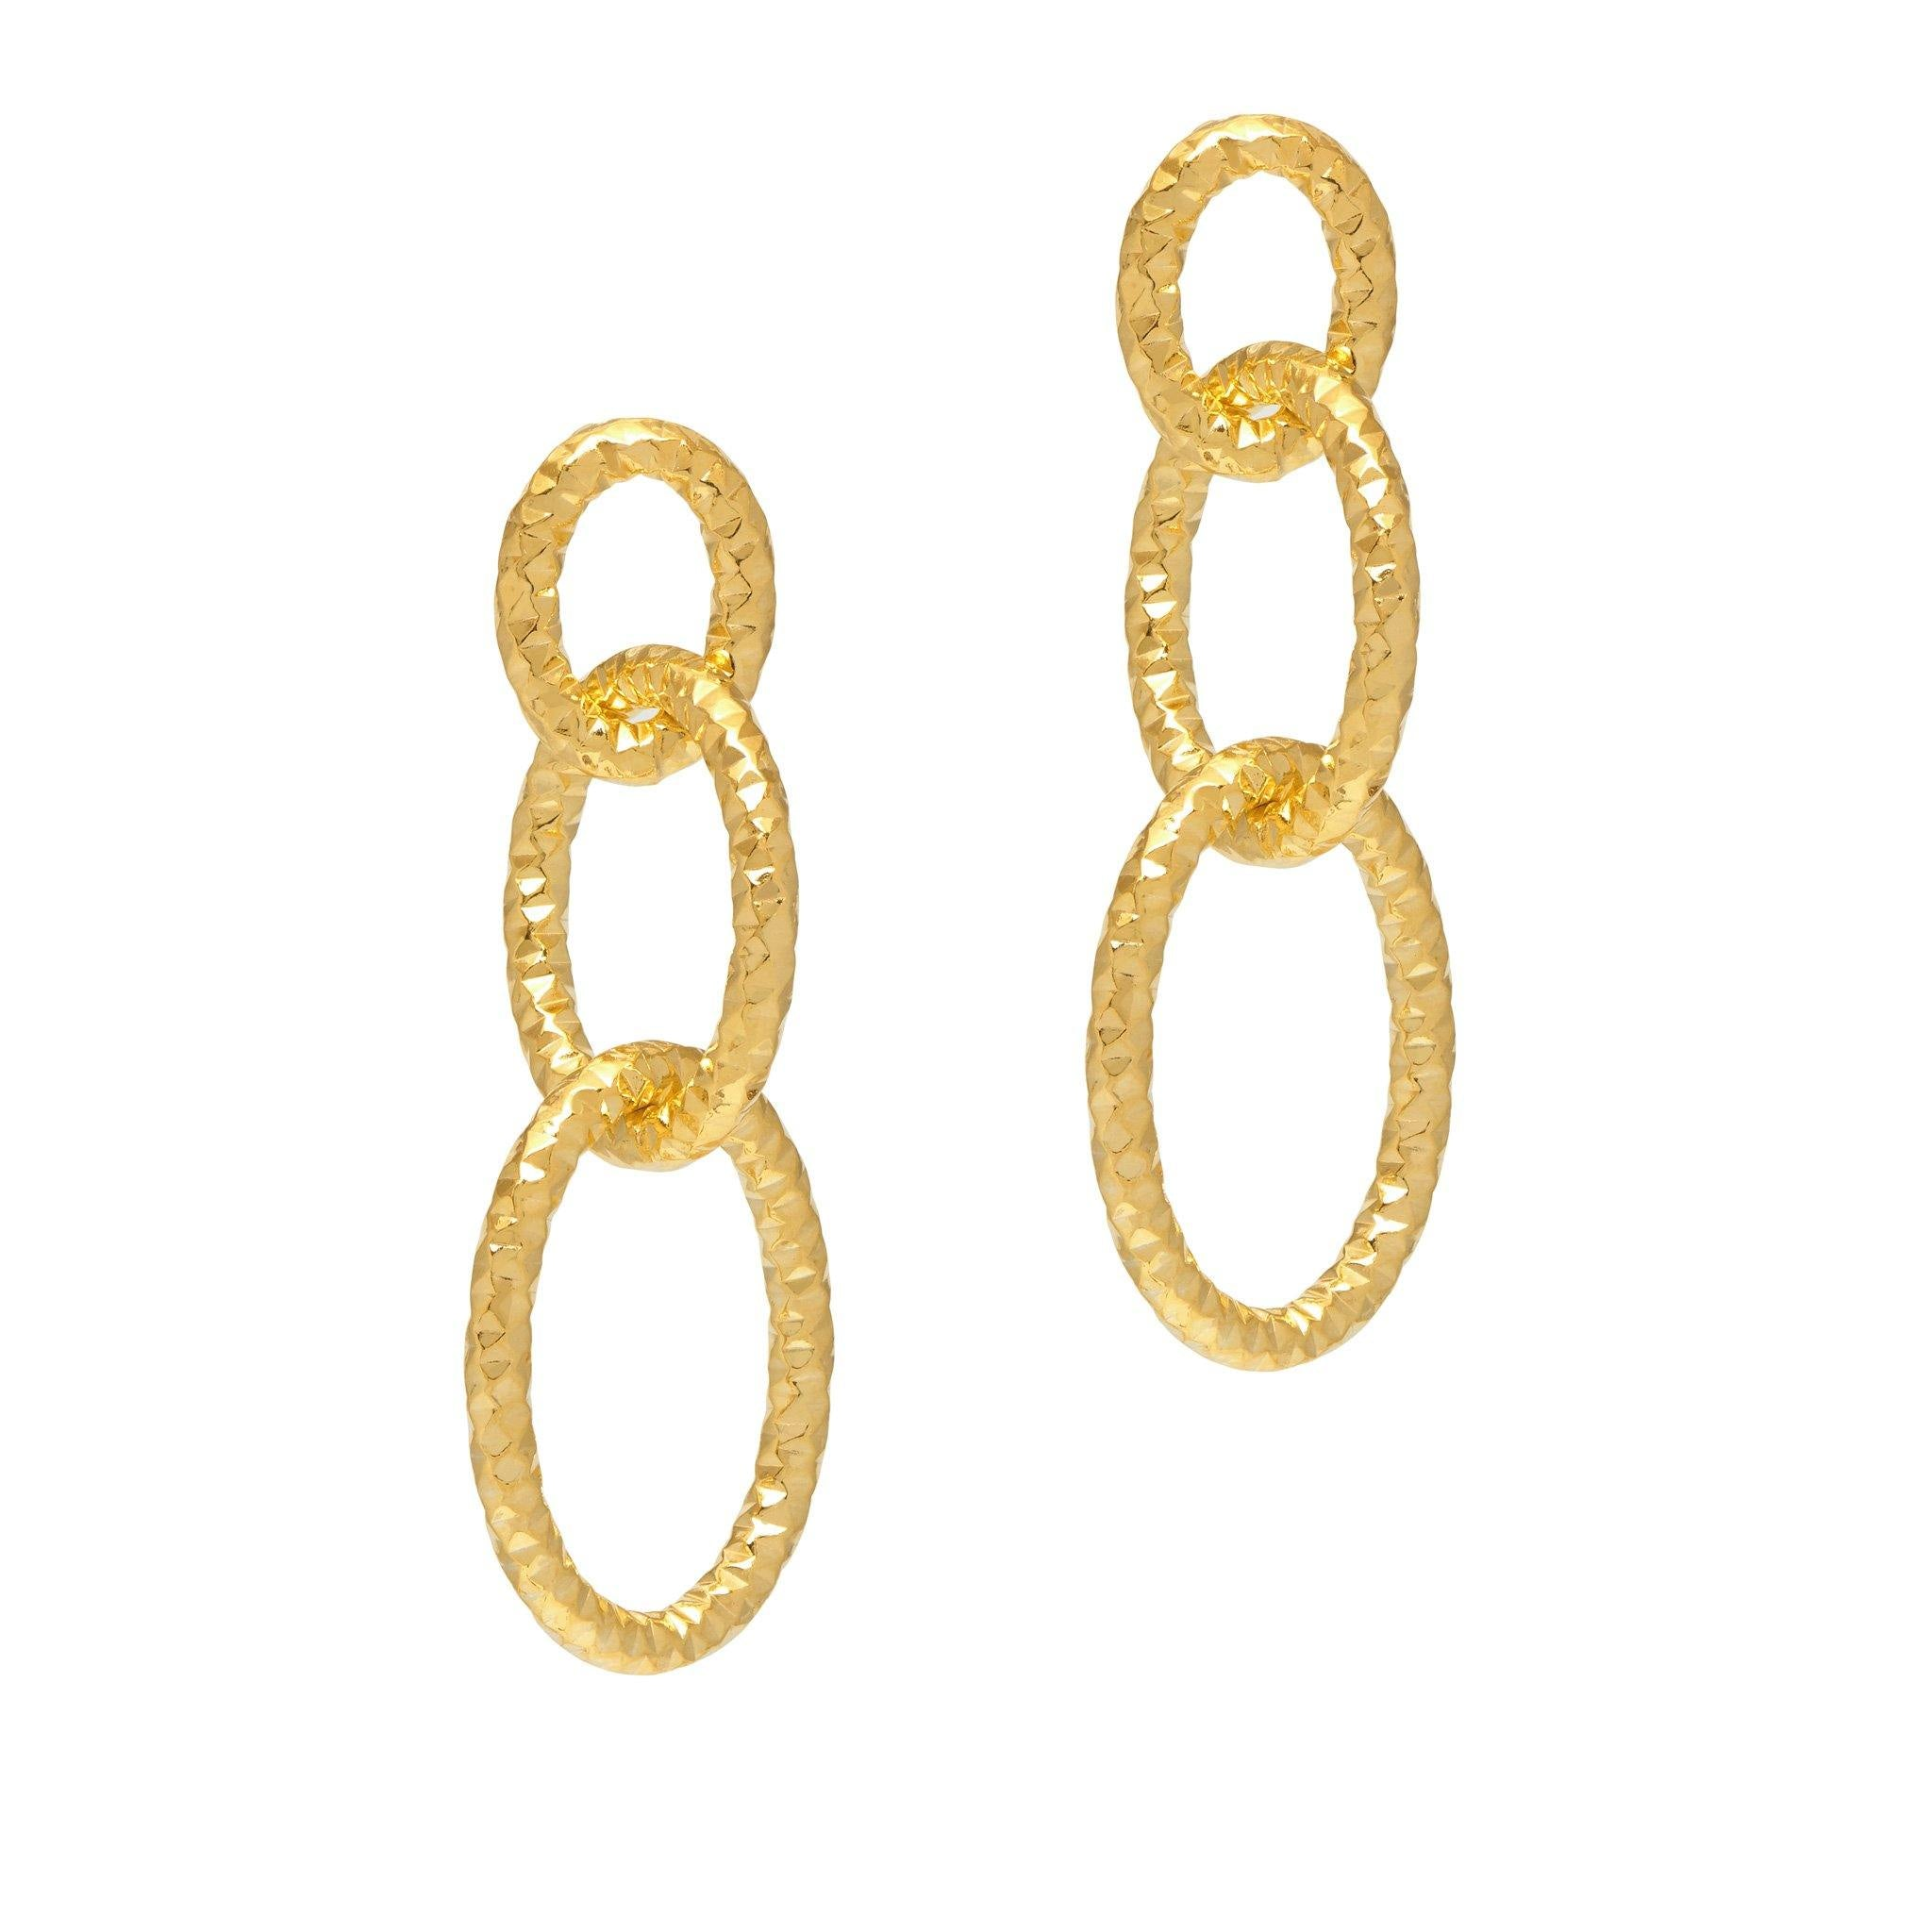 La CATENA Triple Drops - The Hoop Station 925 Sterling Silver Hoop Earrings Gold Huggies